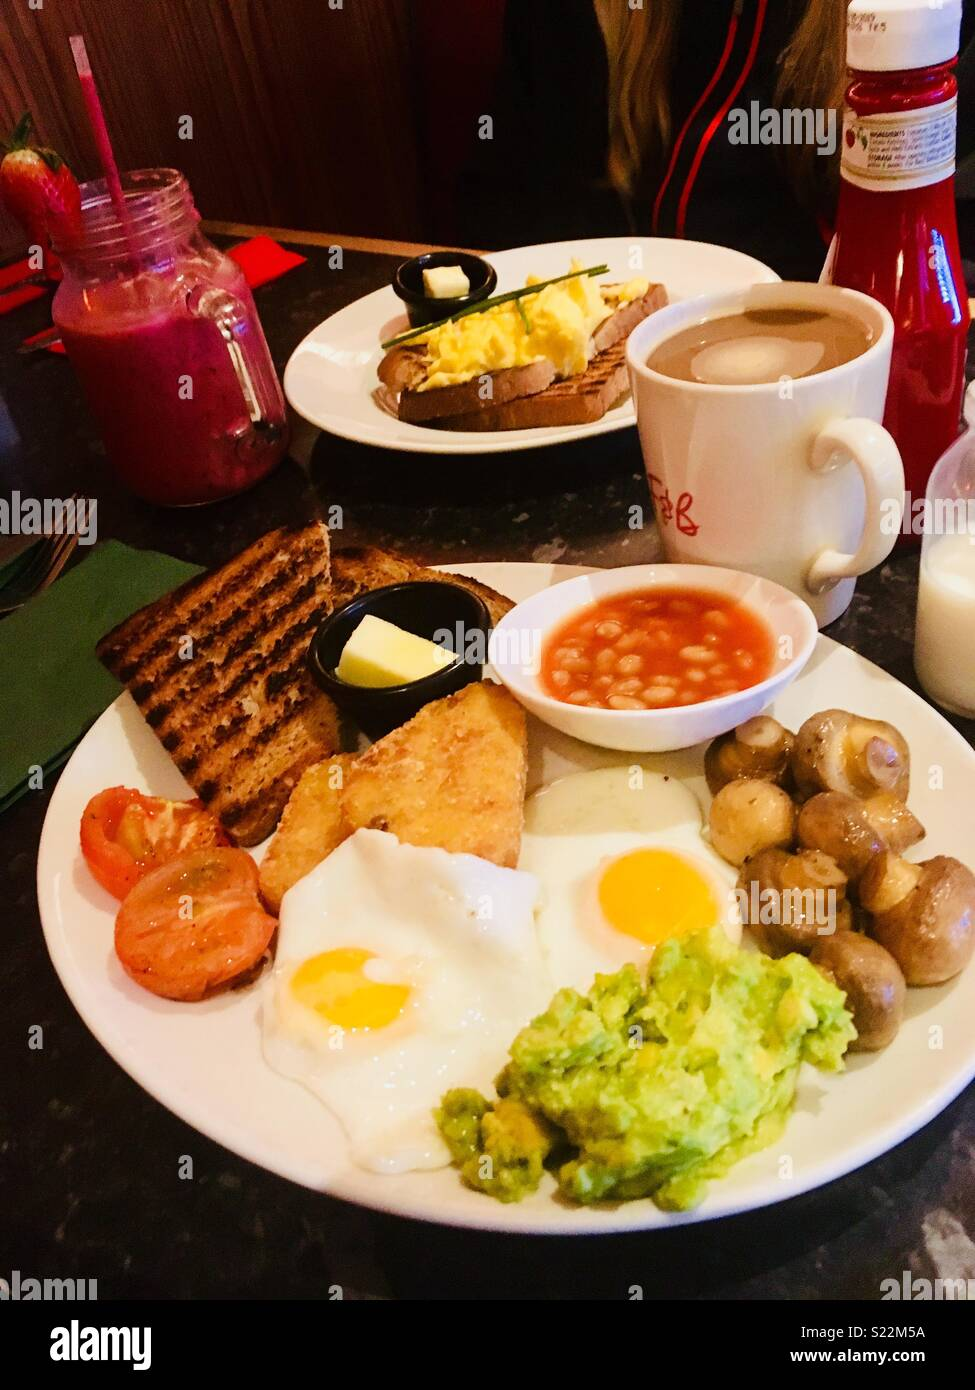 An  vegetarian English breakfast of eggs, hash browns, mushrooms, avocado mash, grilled tomato, toast and butter. In the background is ketchup, a smoothie and a mug of coffee. - Stock Image